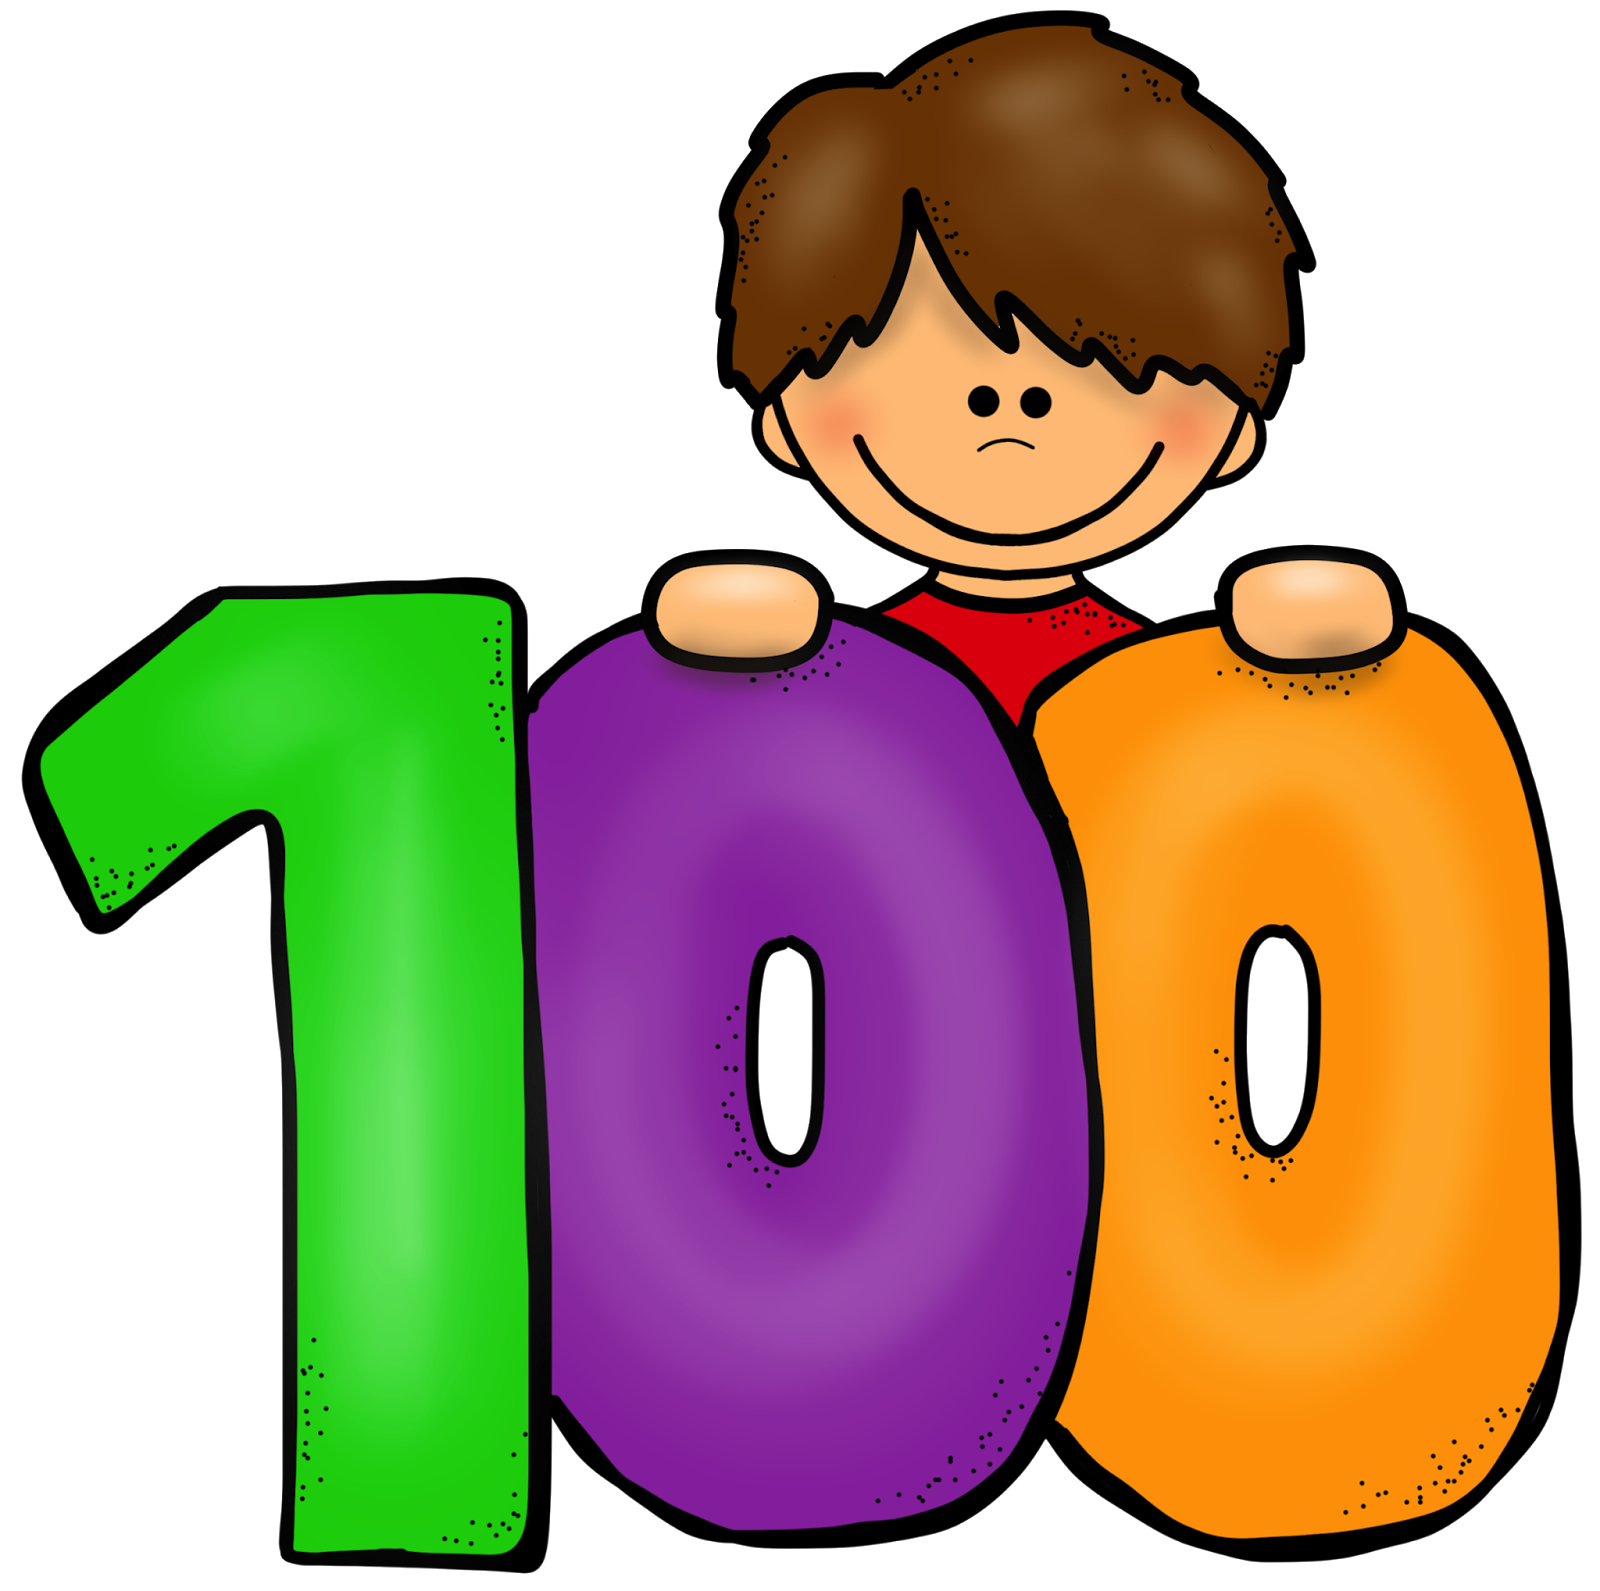 Clipart 100th day png free library 100 Days Clipart | Free download best 100 Days Clipart on ClipArtMag.com png free library